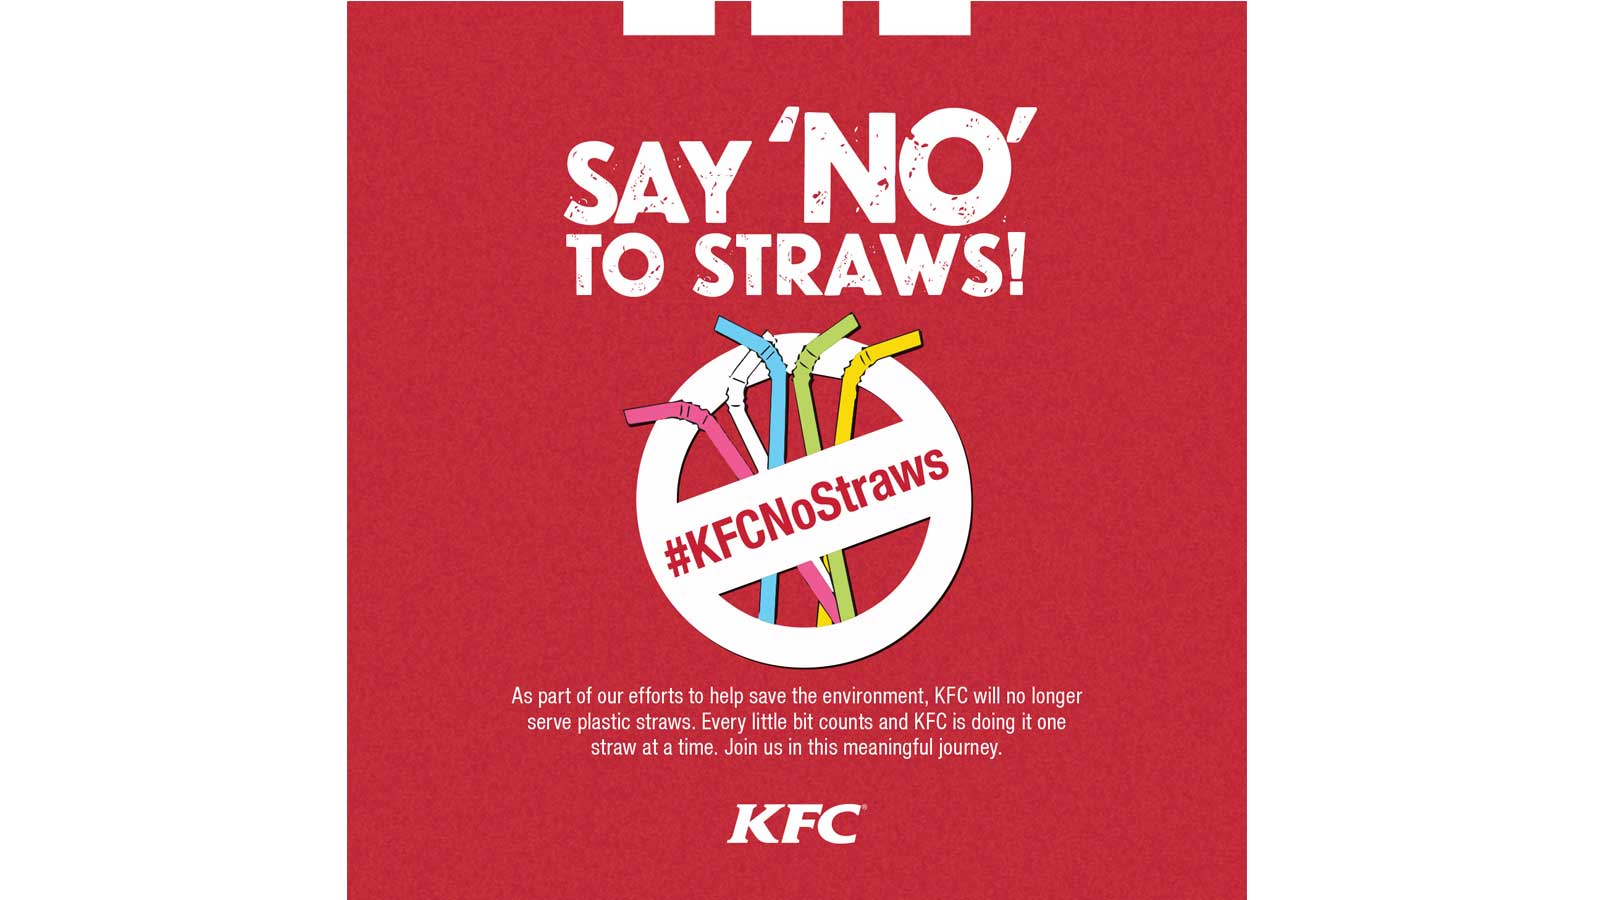 KFC Malta adopts a No Straws Policy